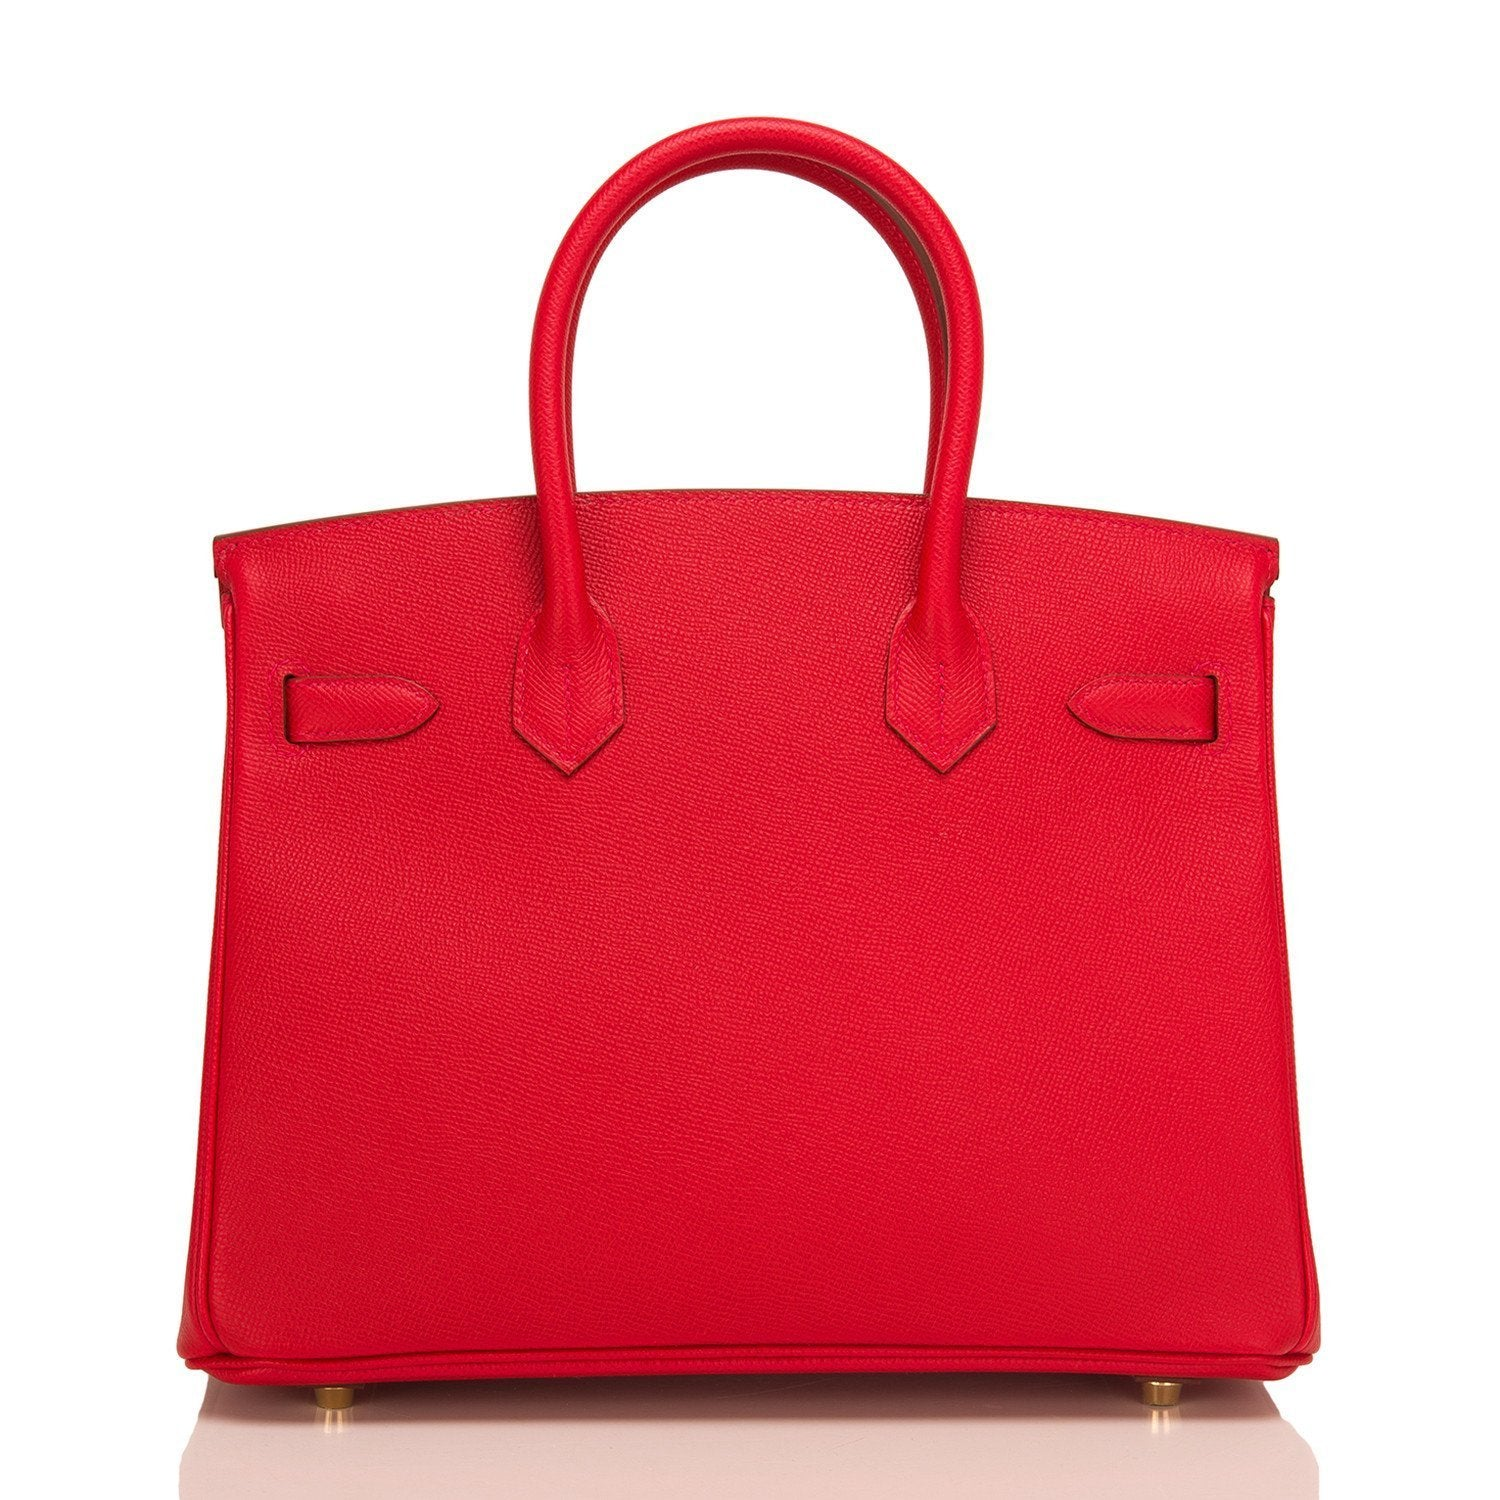 ea27b6a14331 Hermes Rouge Casaque Epsom Birkin 30cm Gold Hardware – Madison Avenue  Couture